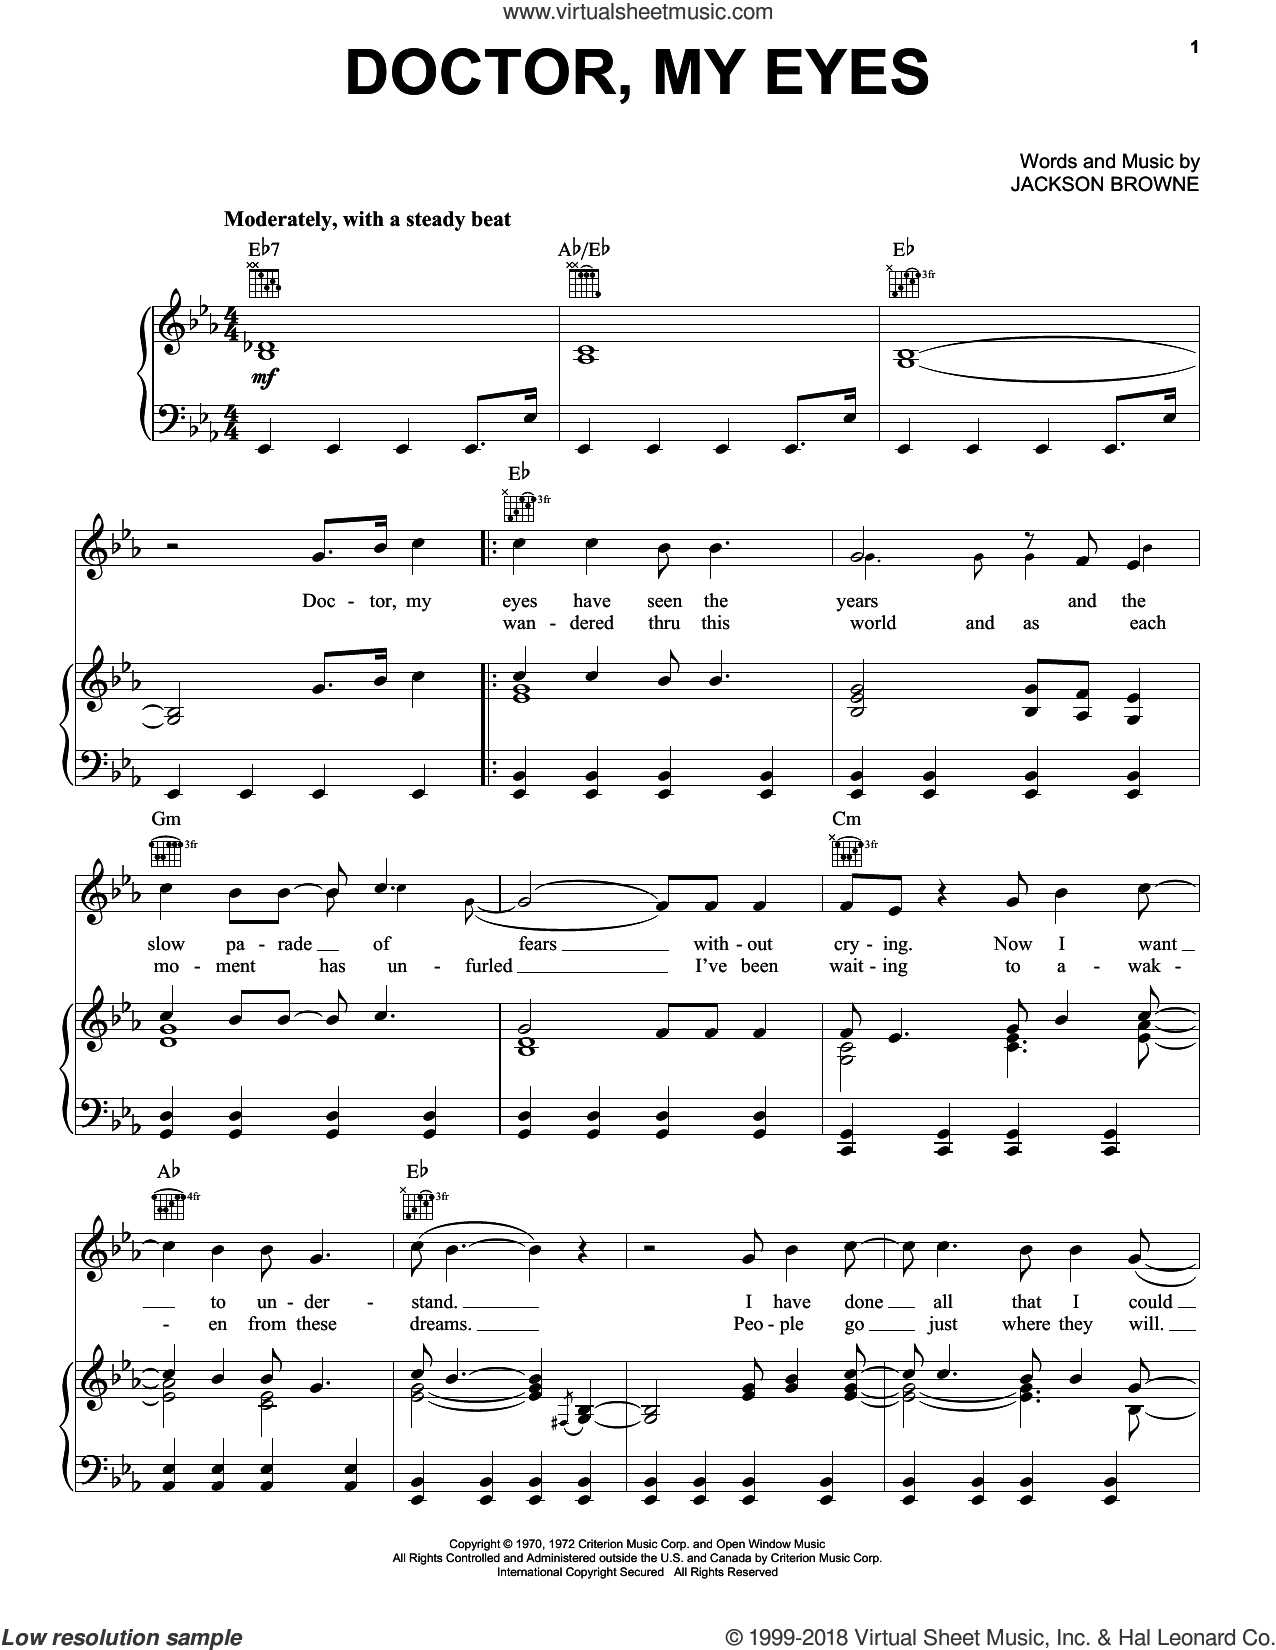 Doctor, My Eyes sheet music for voice, piano or guitar by Jackson Browne and The Jackson 5, intermediate skill level